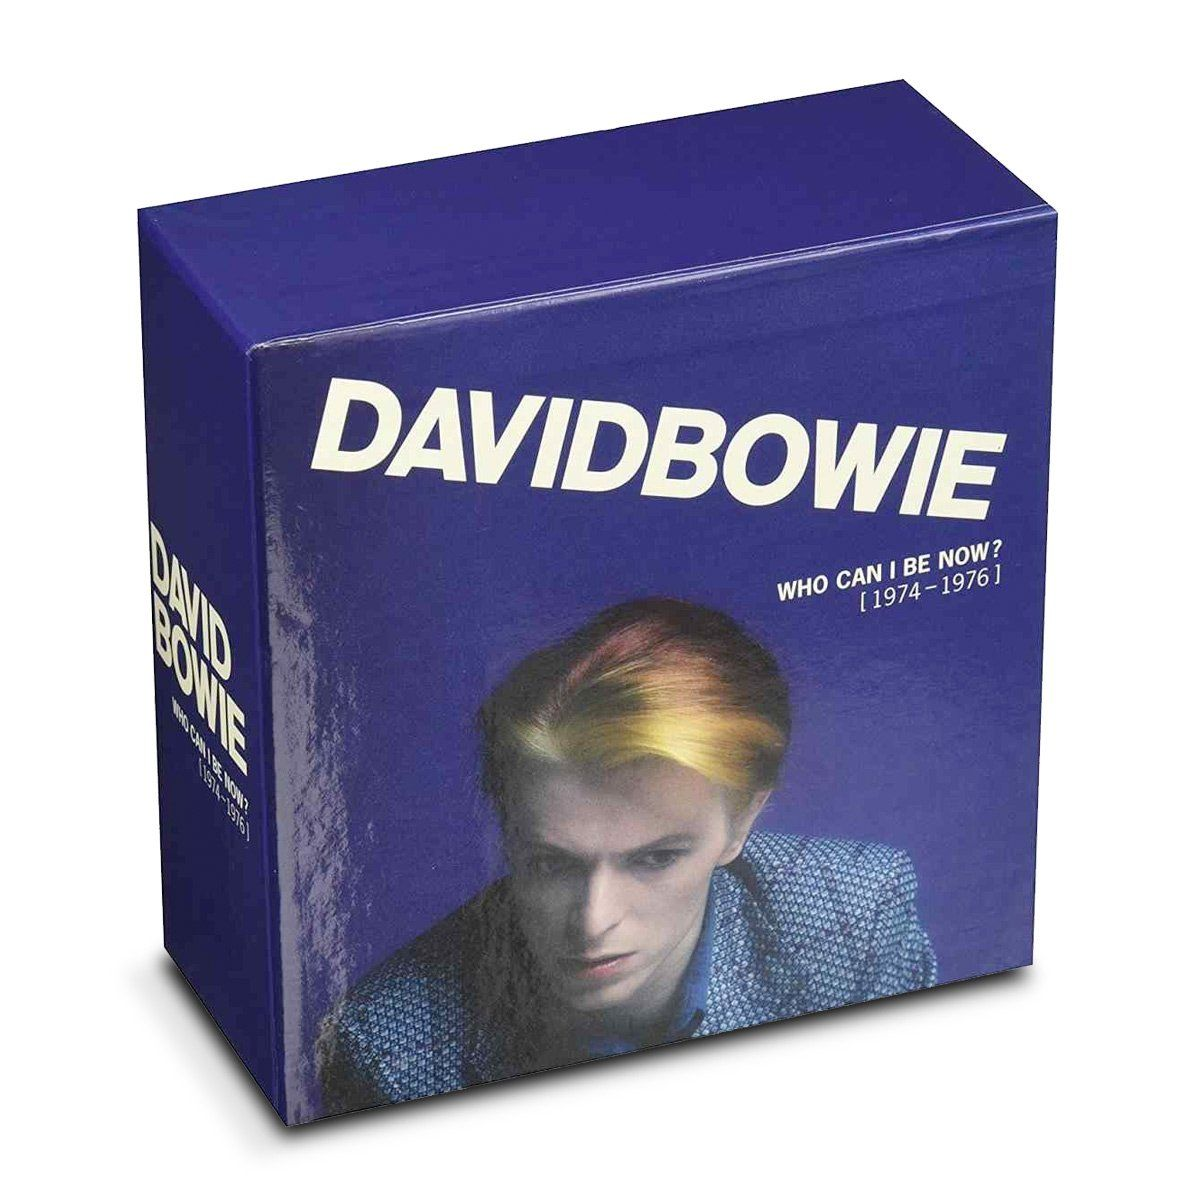 LP David Bowie Who Can i Be Now? (1974 - 1976)